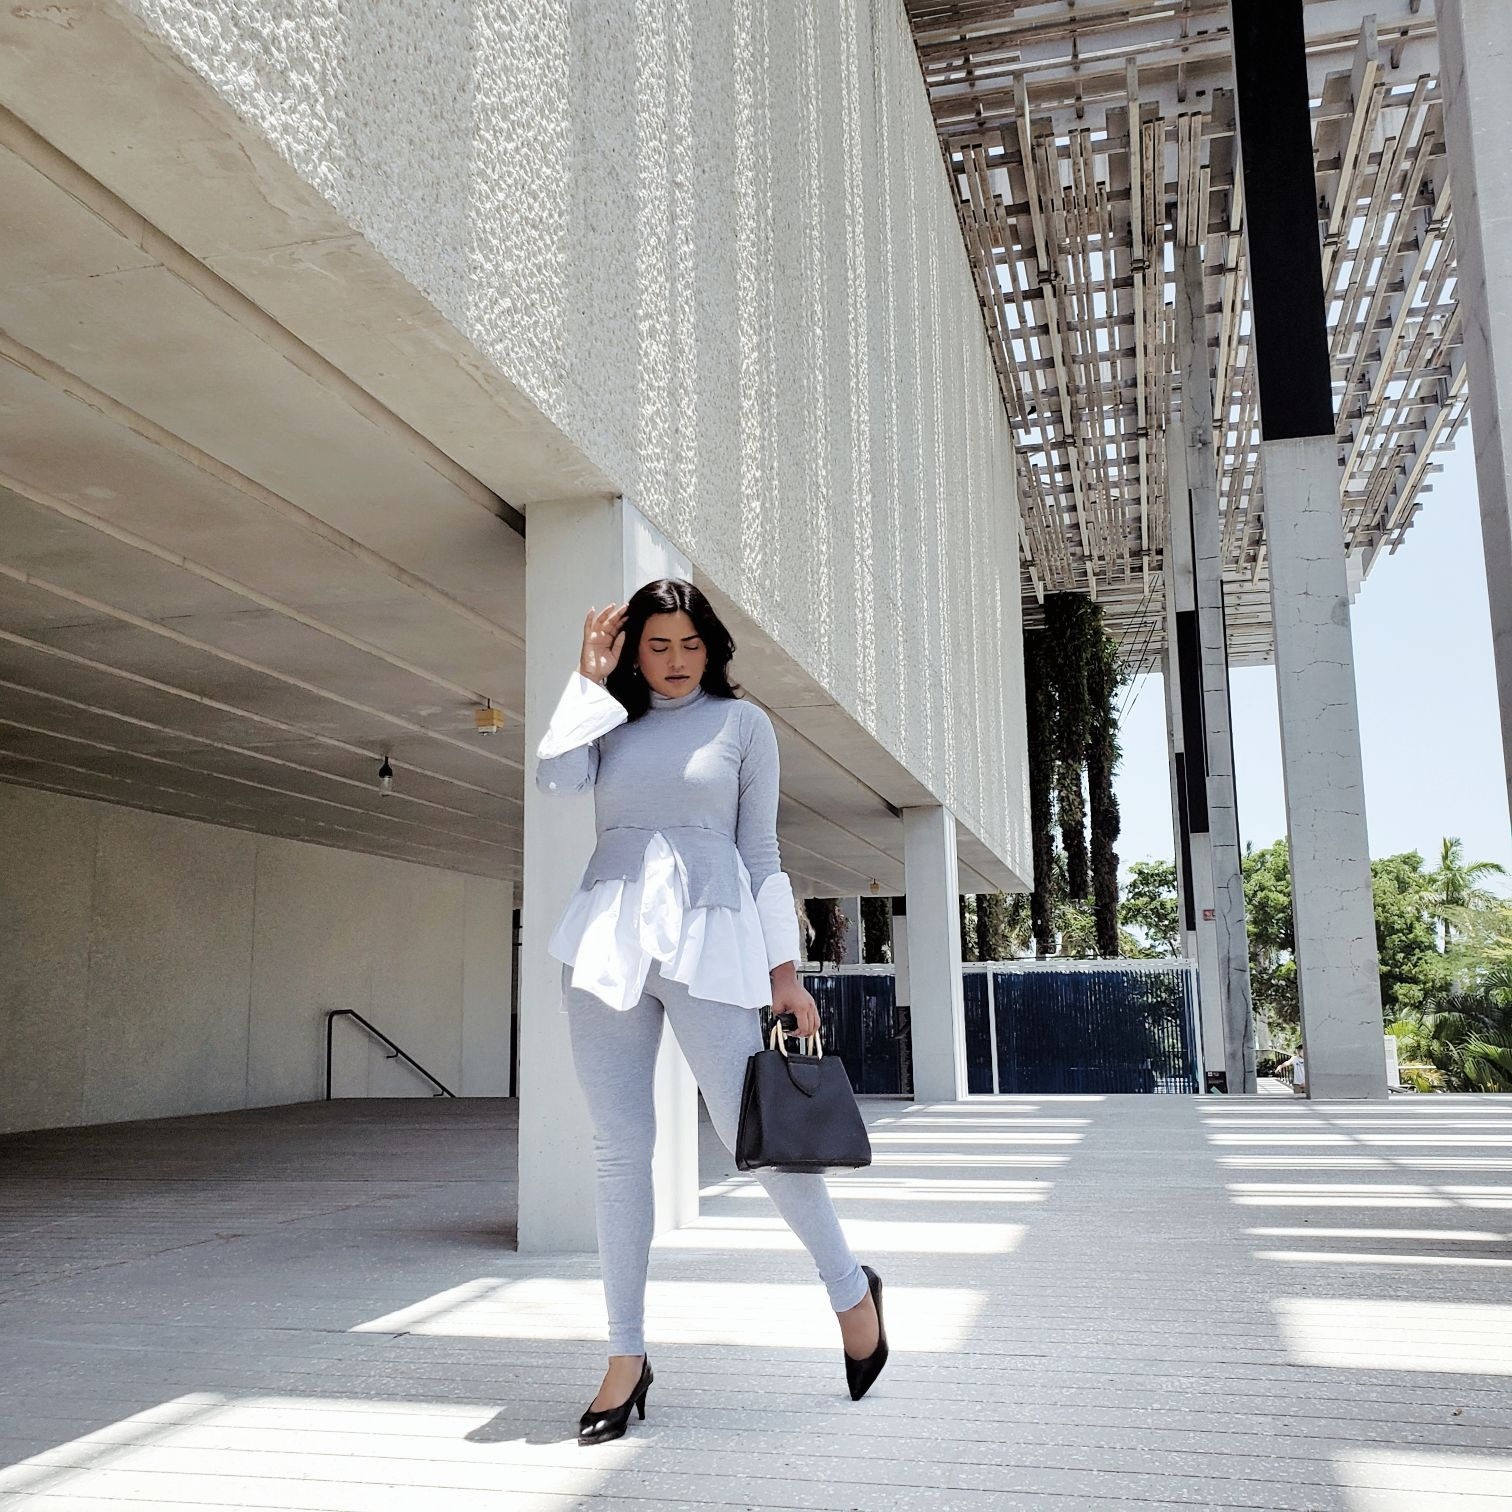 Afroza Khan wearing Grey Layered Look Jumper Shirt Loungewear Femme Luxe Finery Black Pointed Toe Heels Miami Style Blogger